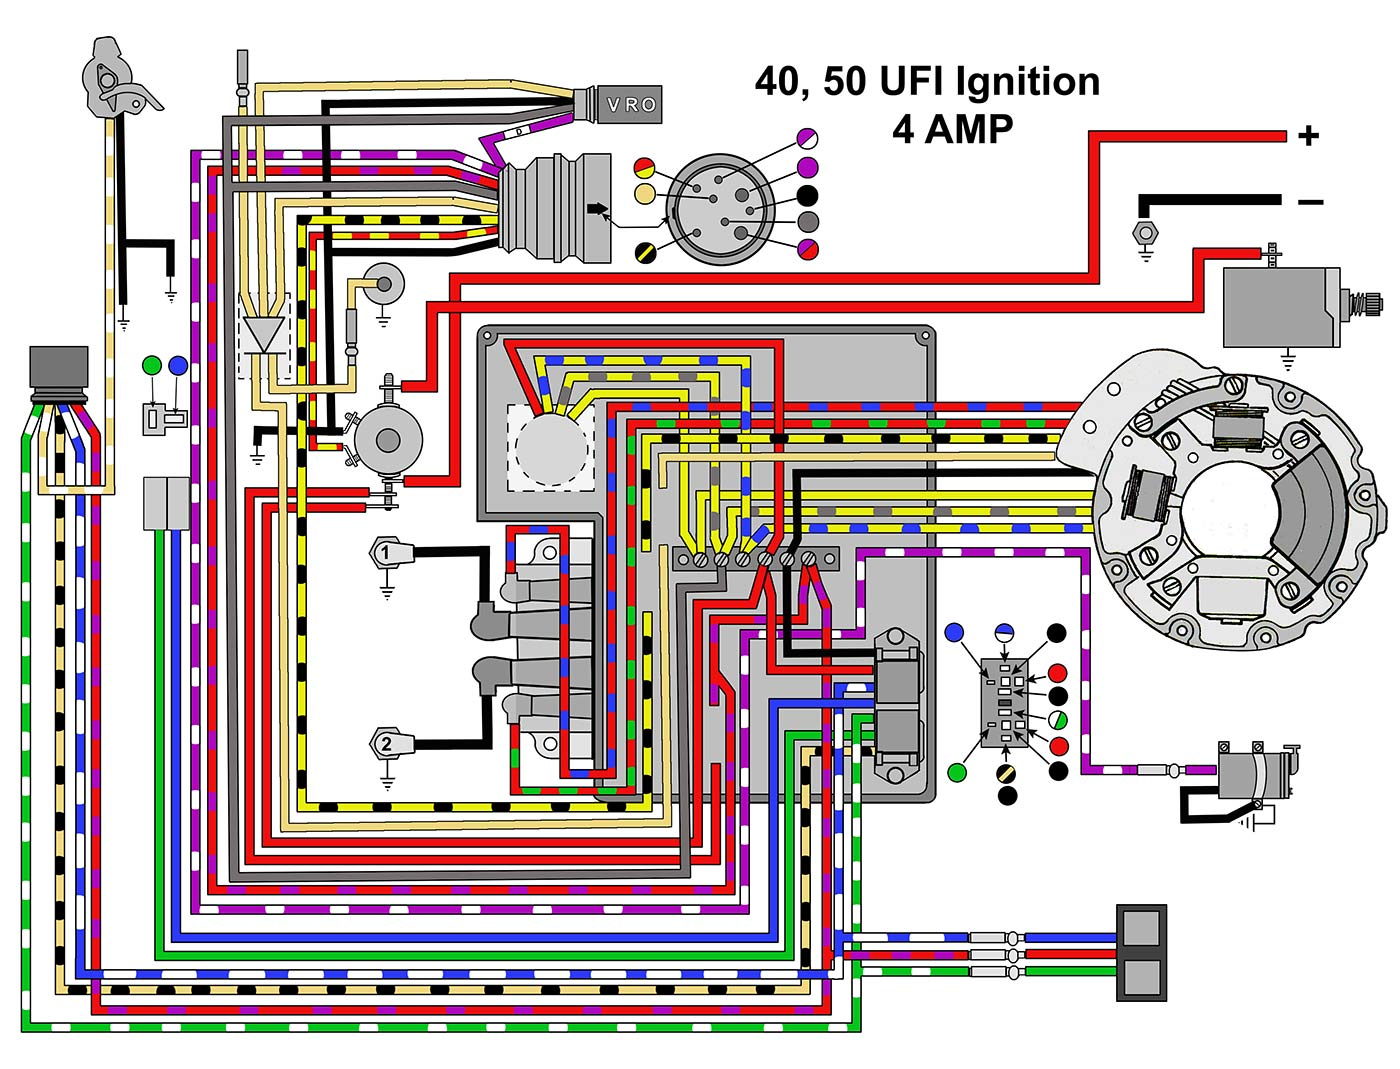 evinrude omc ignition switch wiring diagram 60hp evinrude ignition switch wiring diagram evinrude johnson outboard wiring diagrams -- mastertech ...